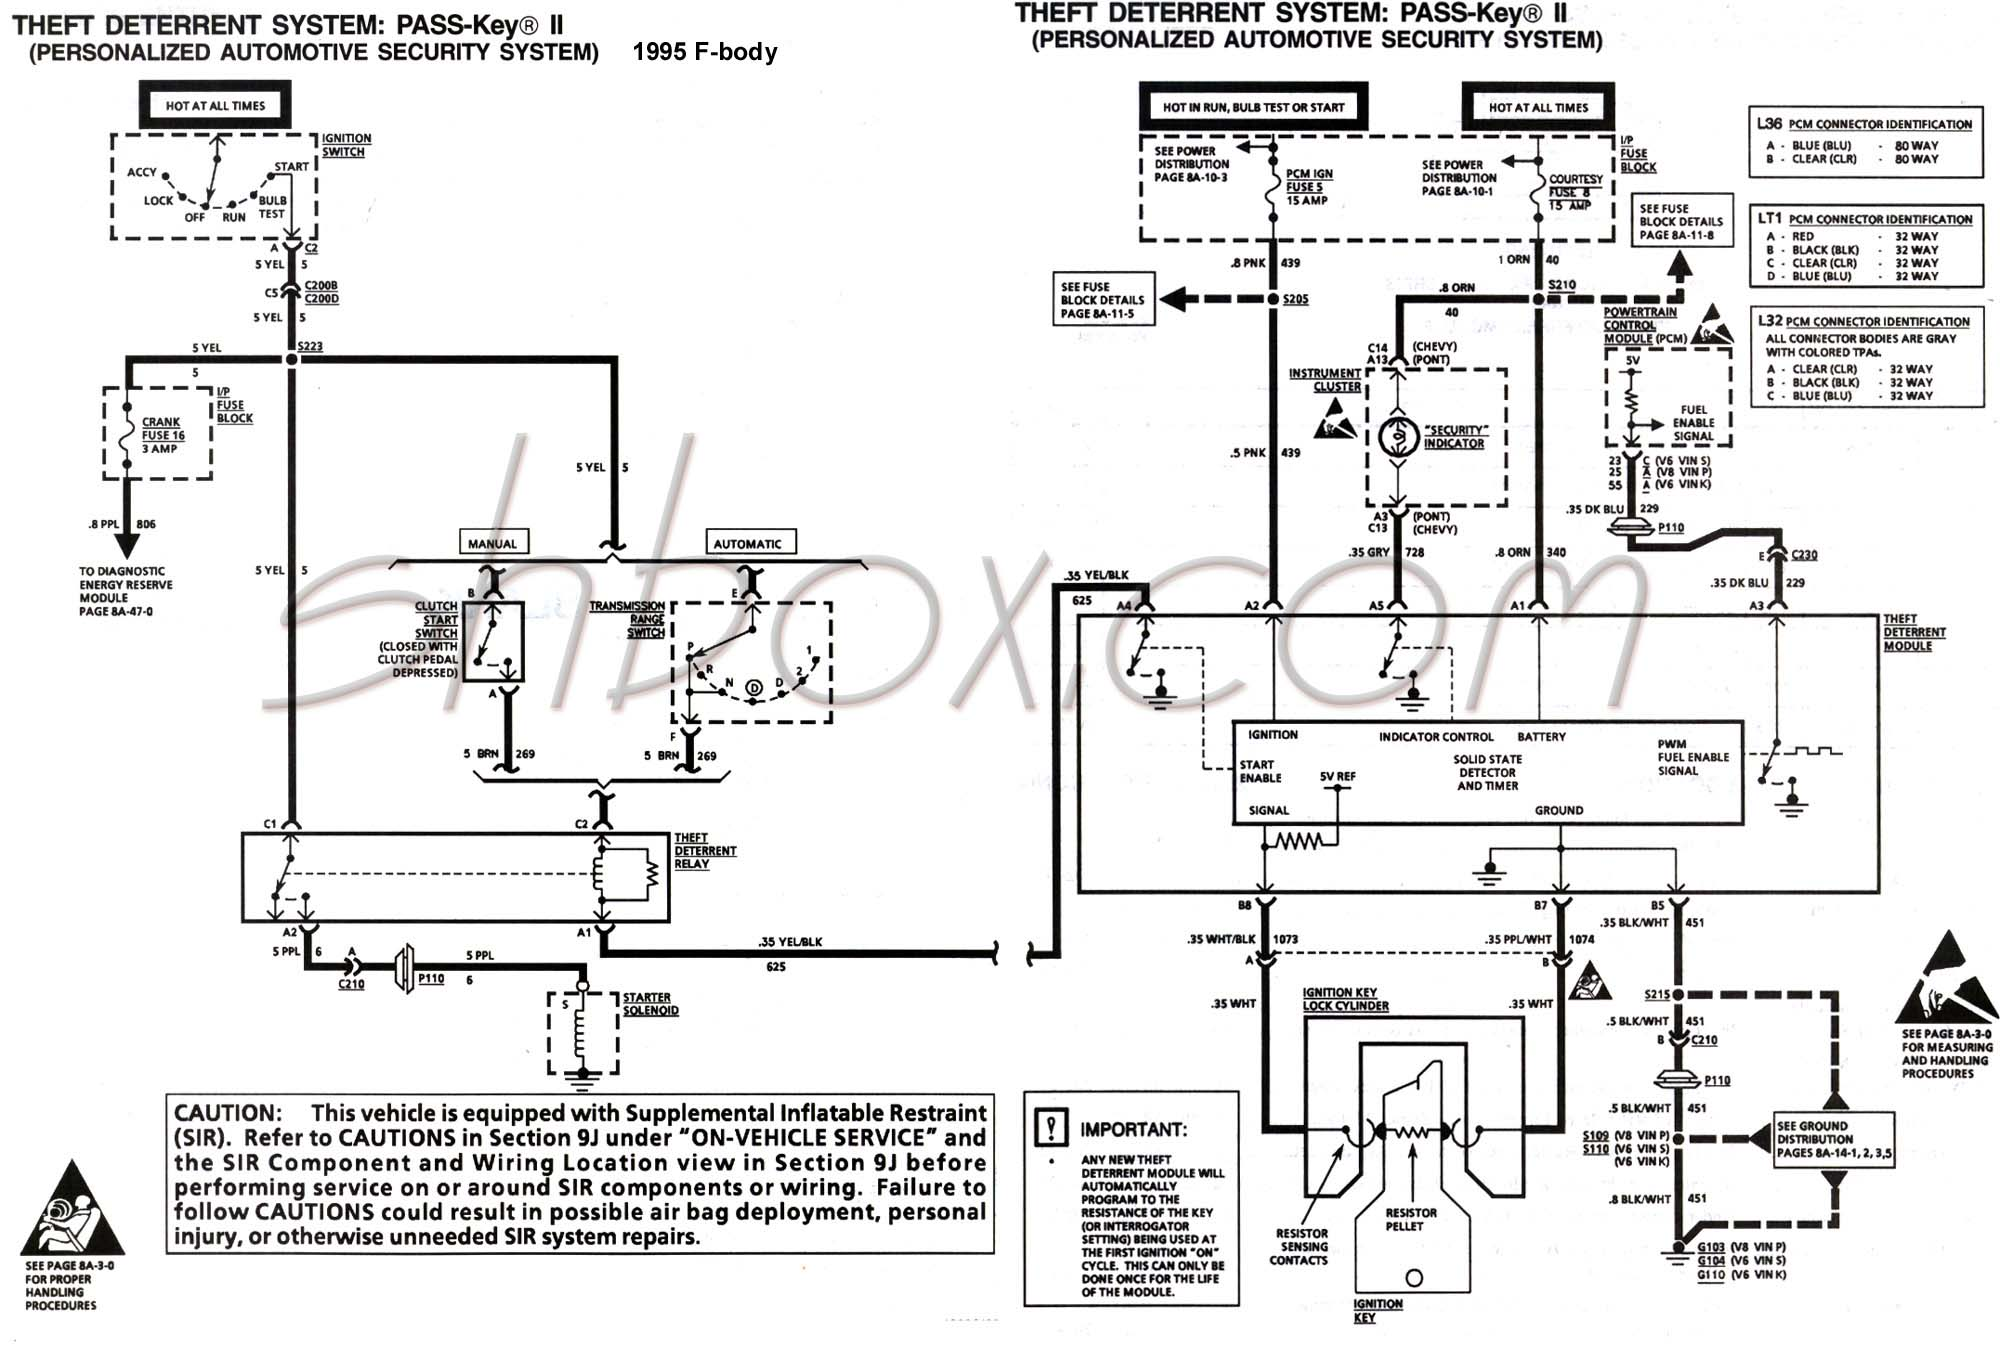 hight resolution of wiring diagram for a 93 camaro lt1 wiring diagram for you4th gen lt1 f body tech